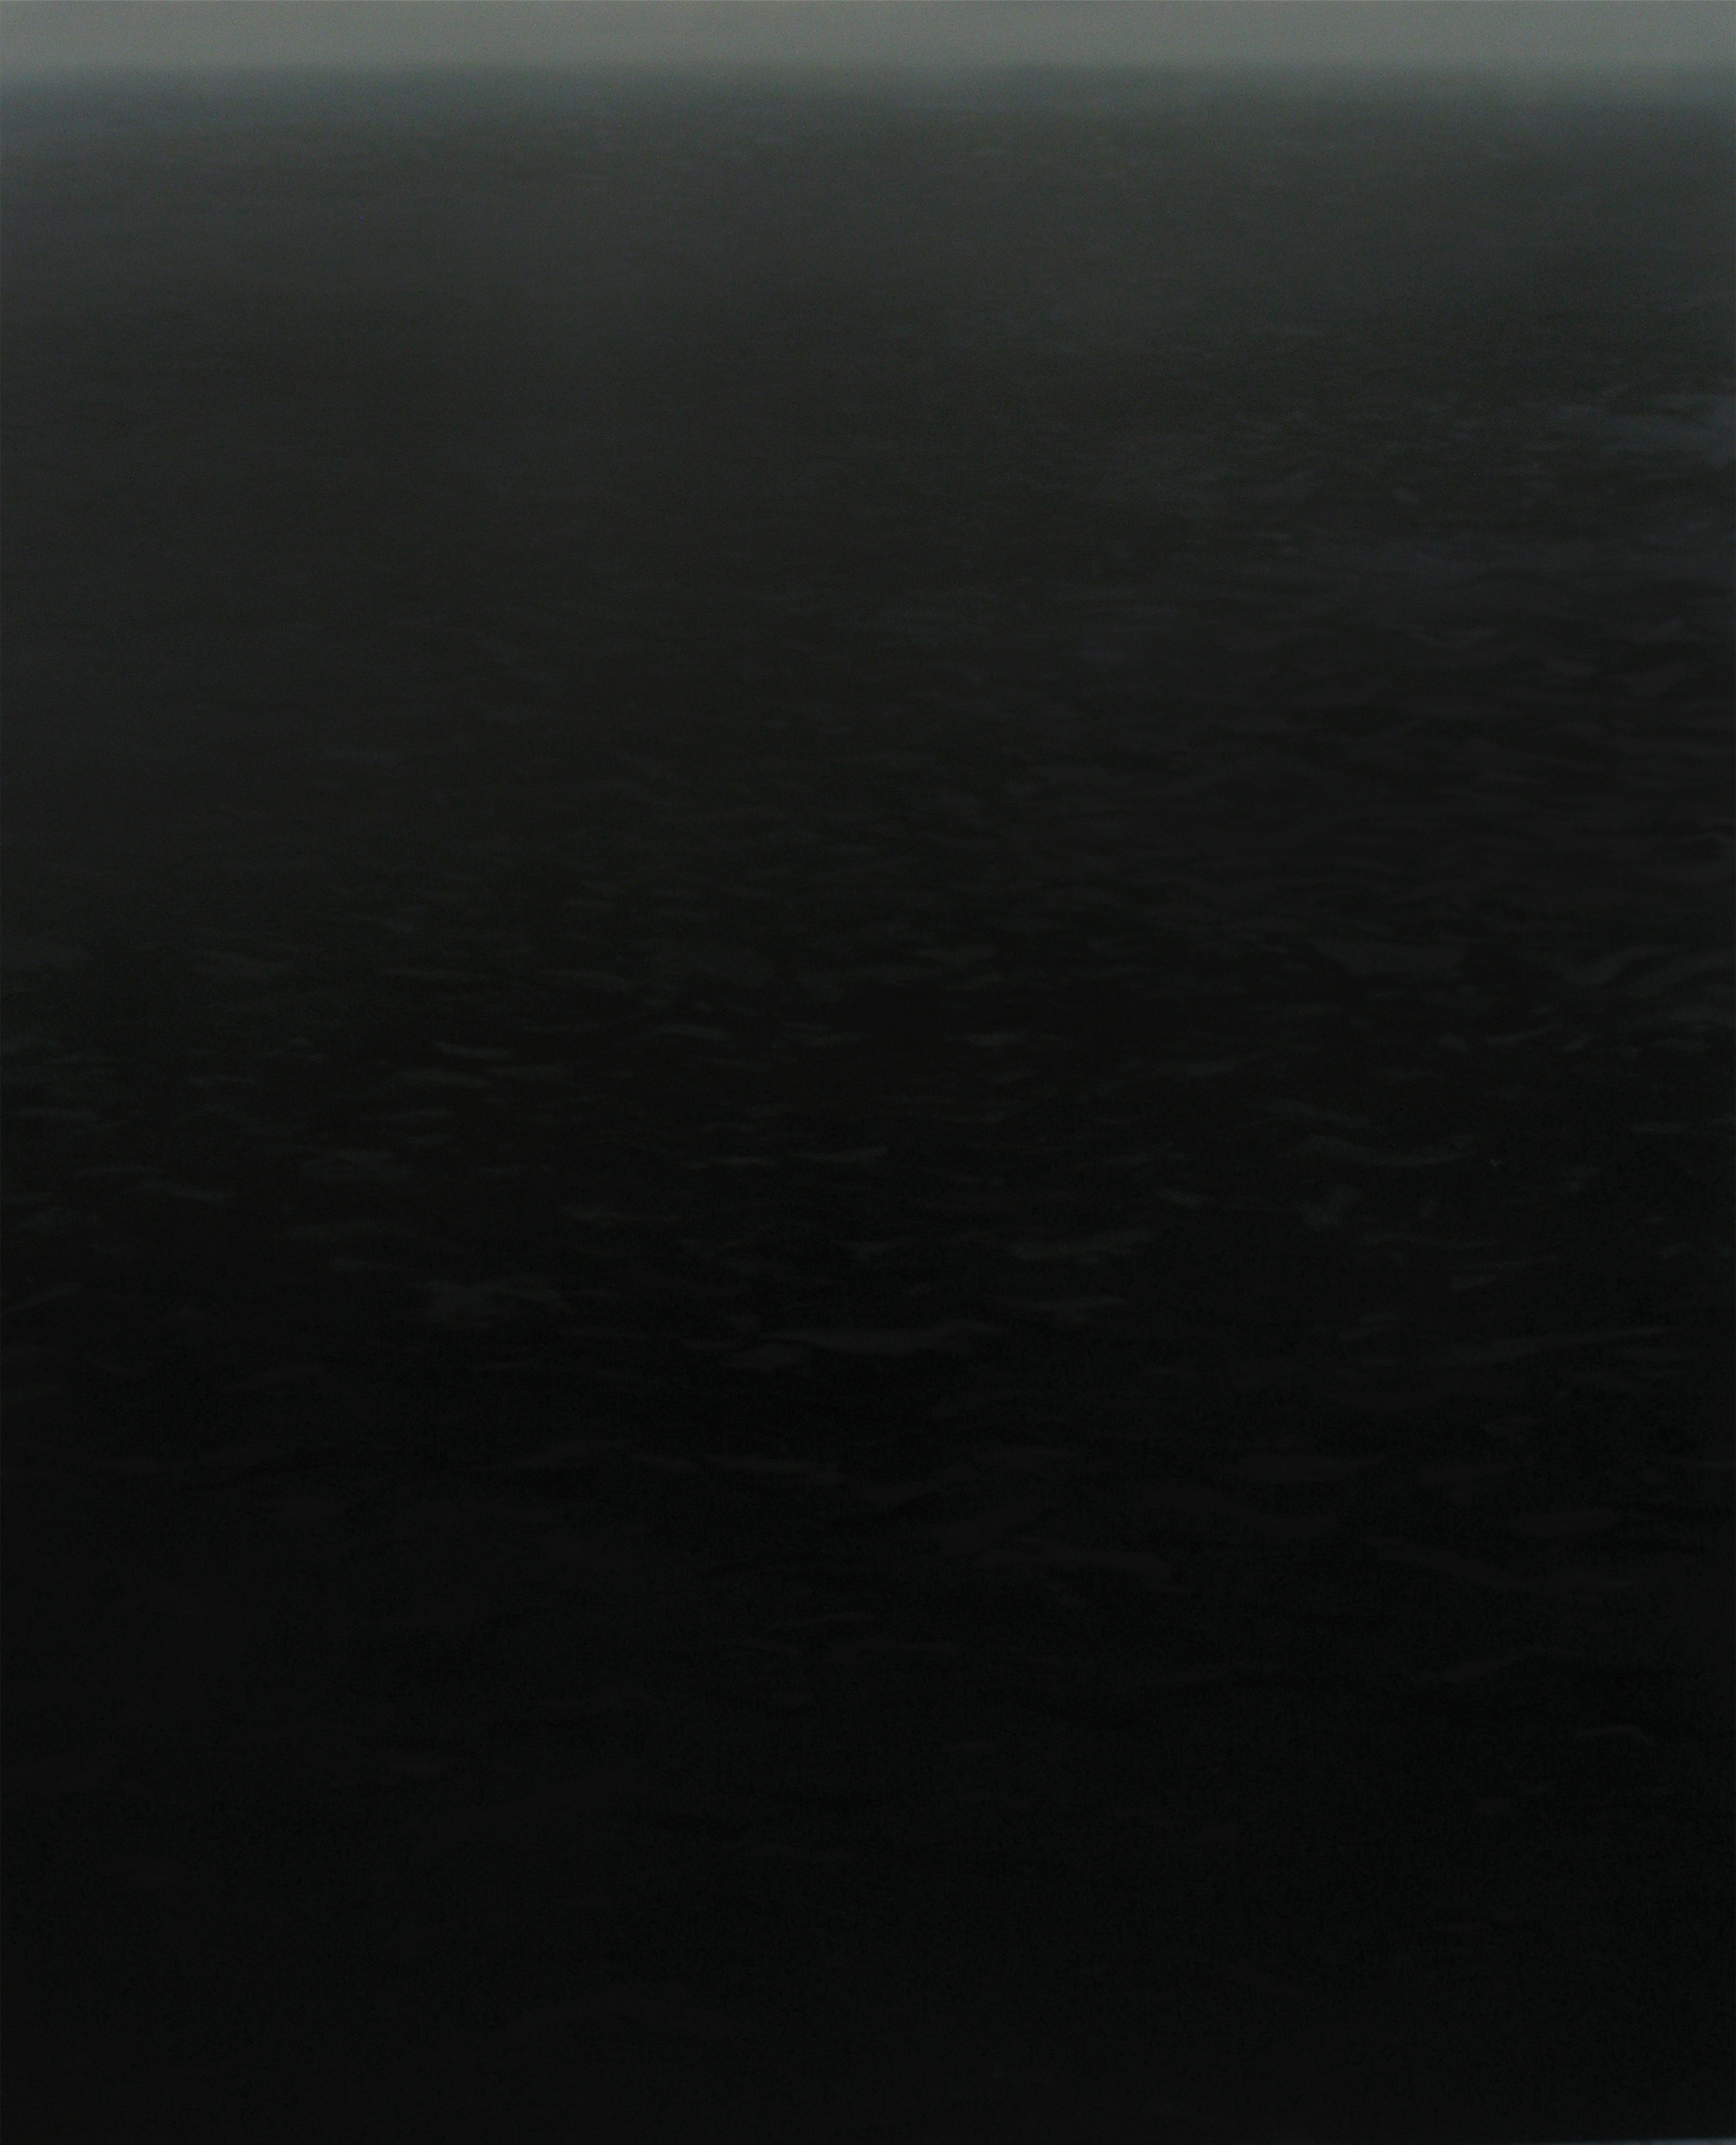 Untitled, Oil on canvas, 220 x 180cm, 2011